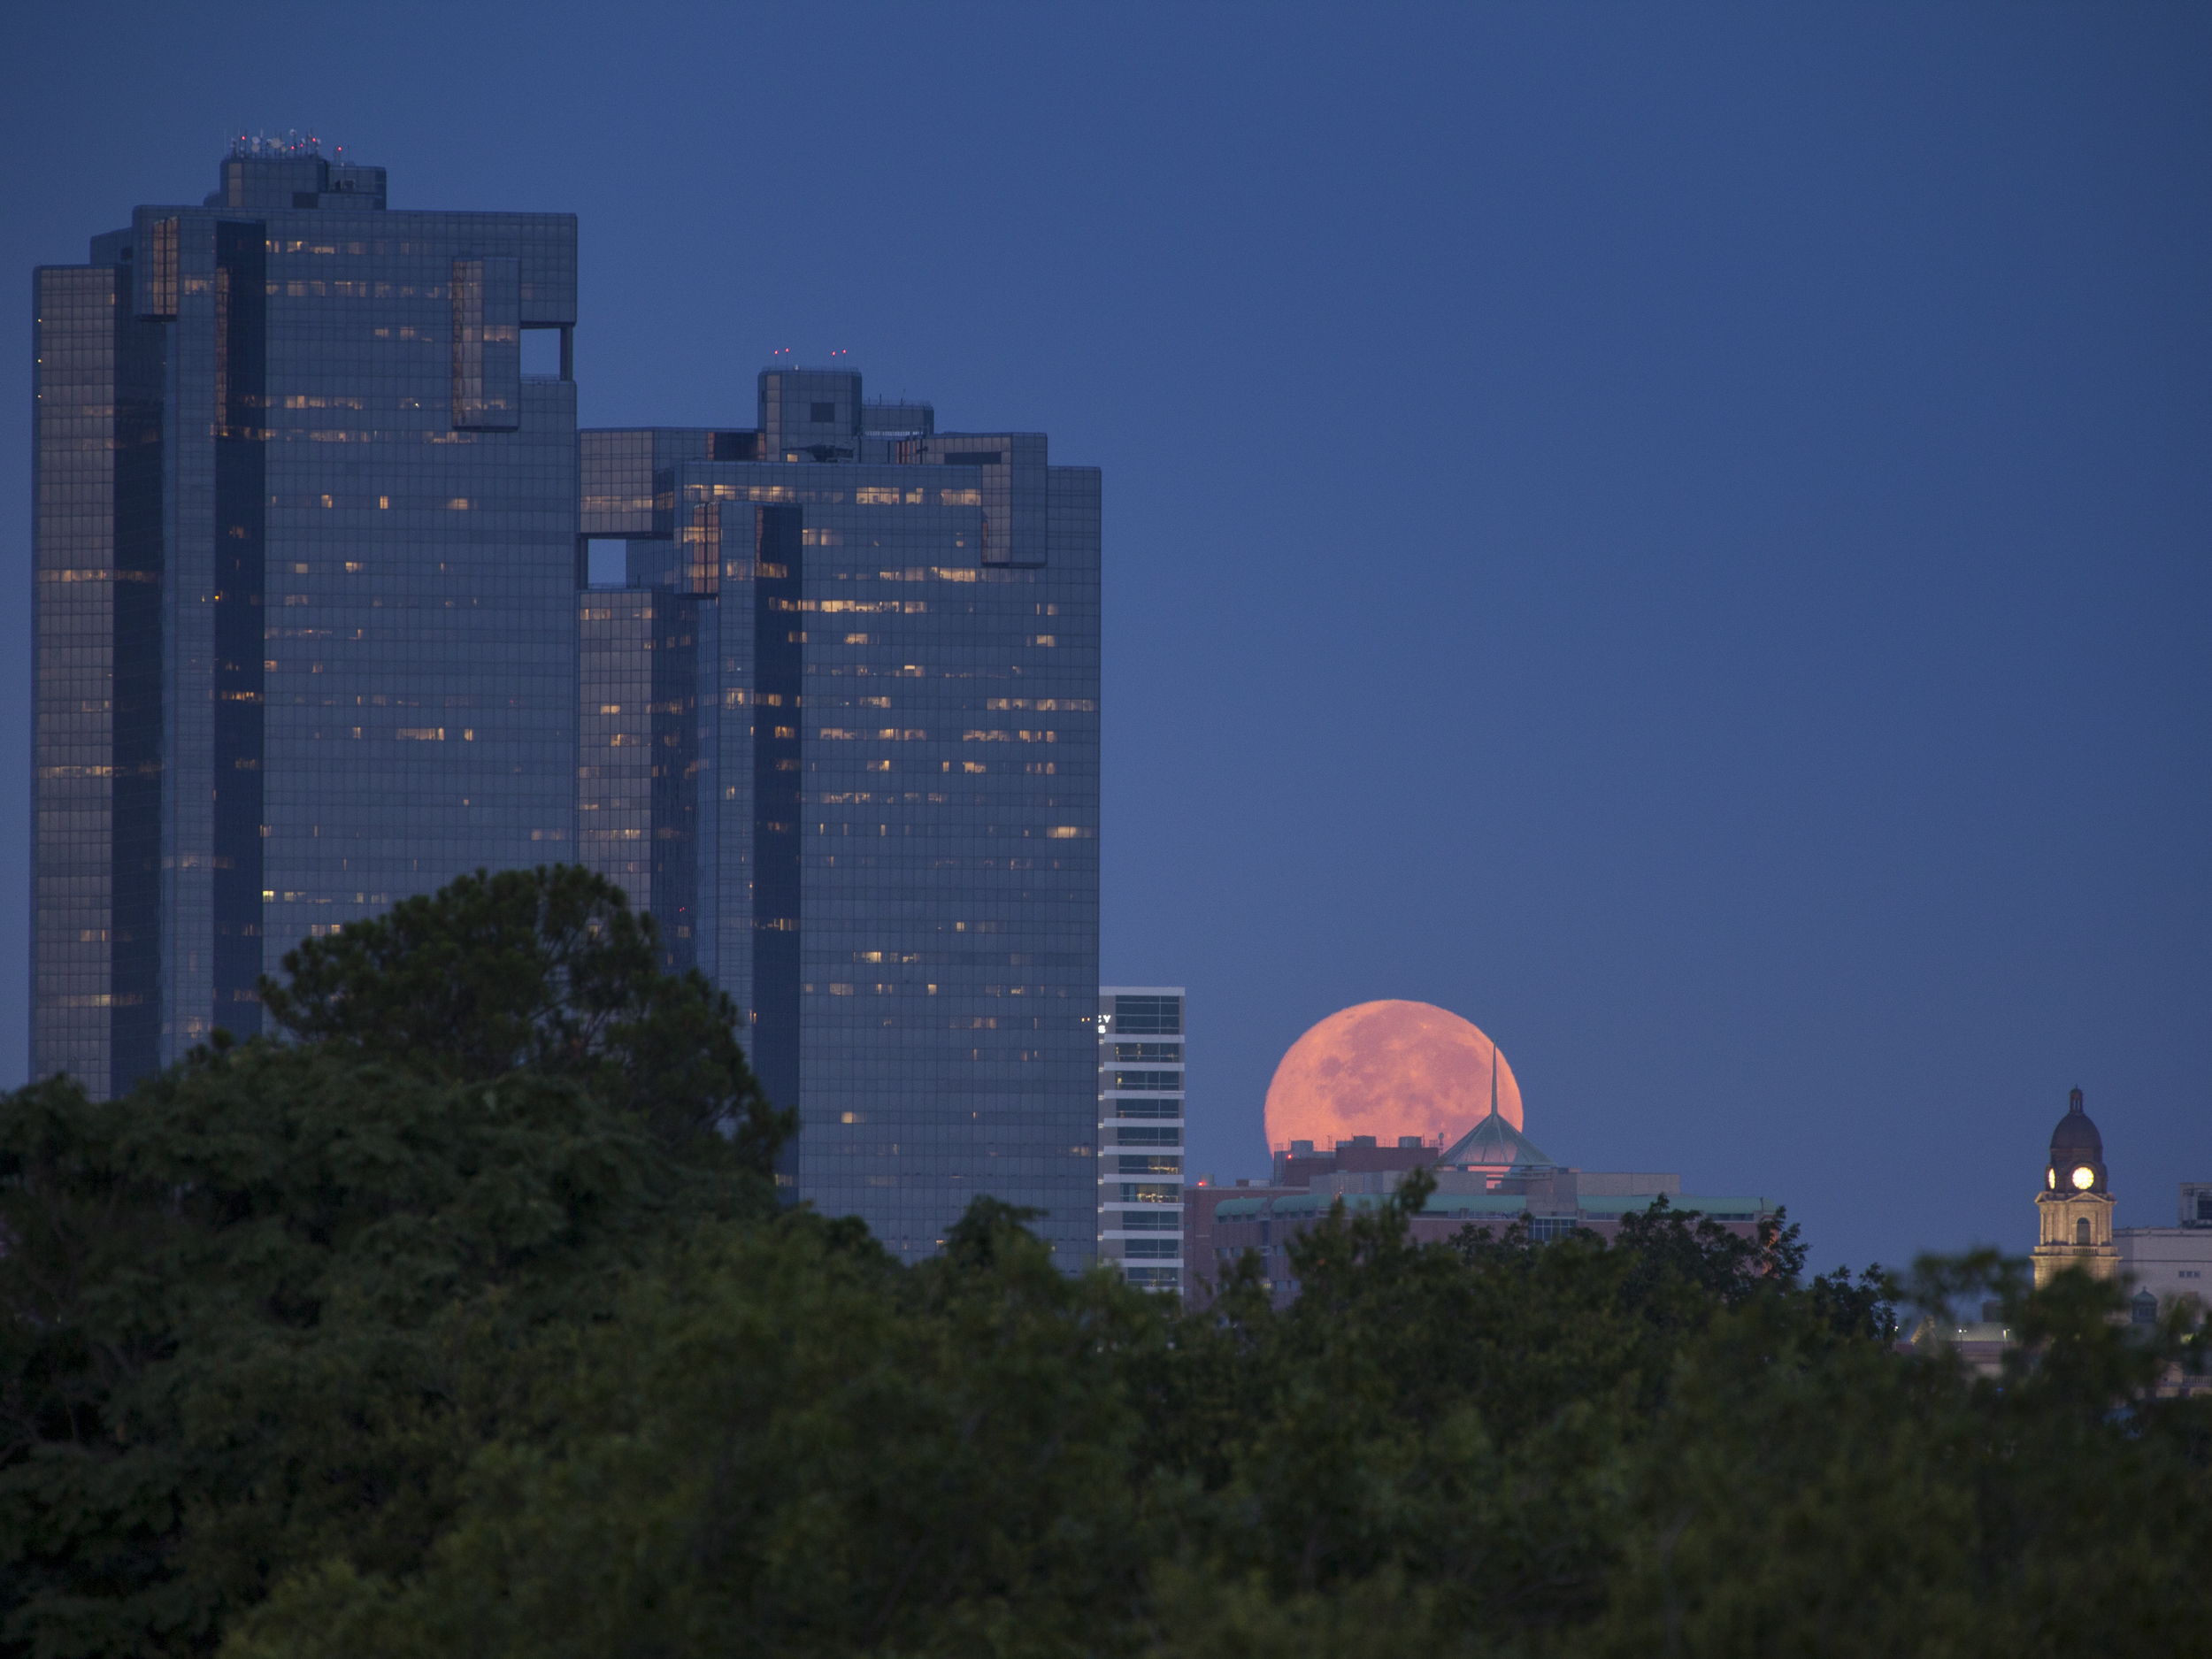 Supermoonset at dawn while looking west over downtown, Fort Worth, Texas, USA Copyright © Kipp Baker, All rights reserved.